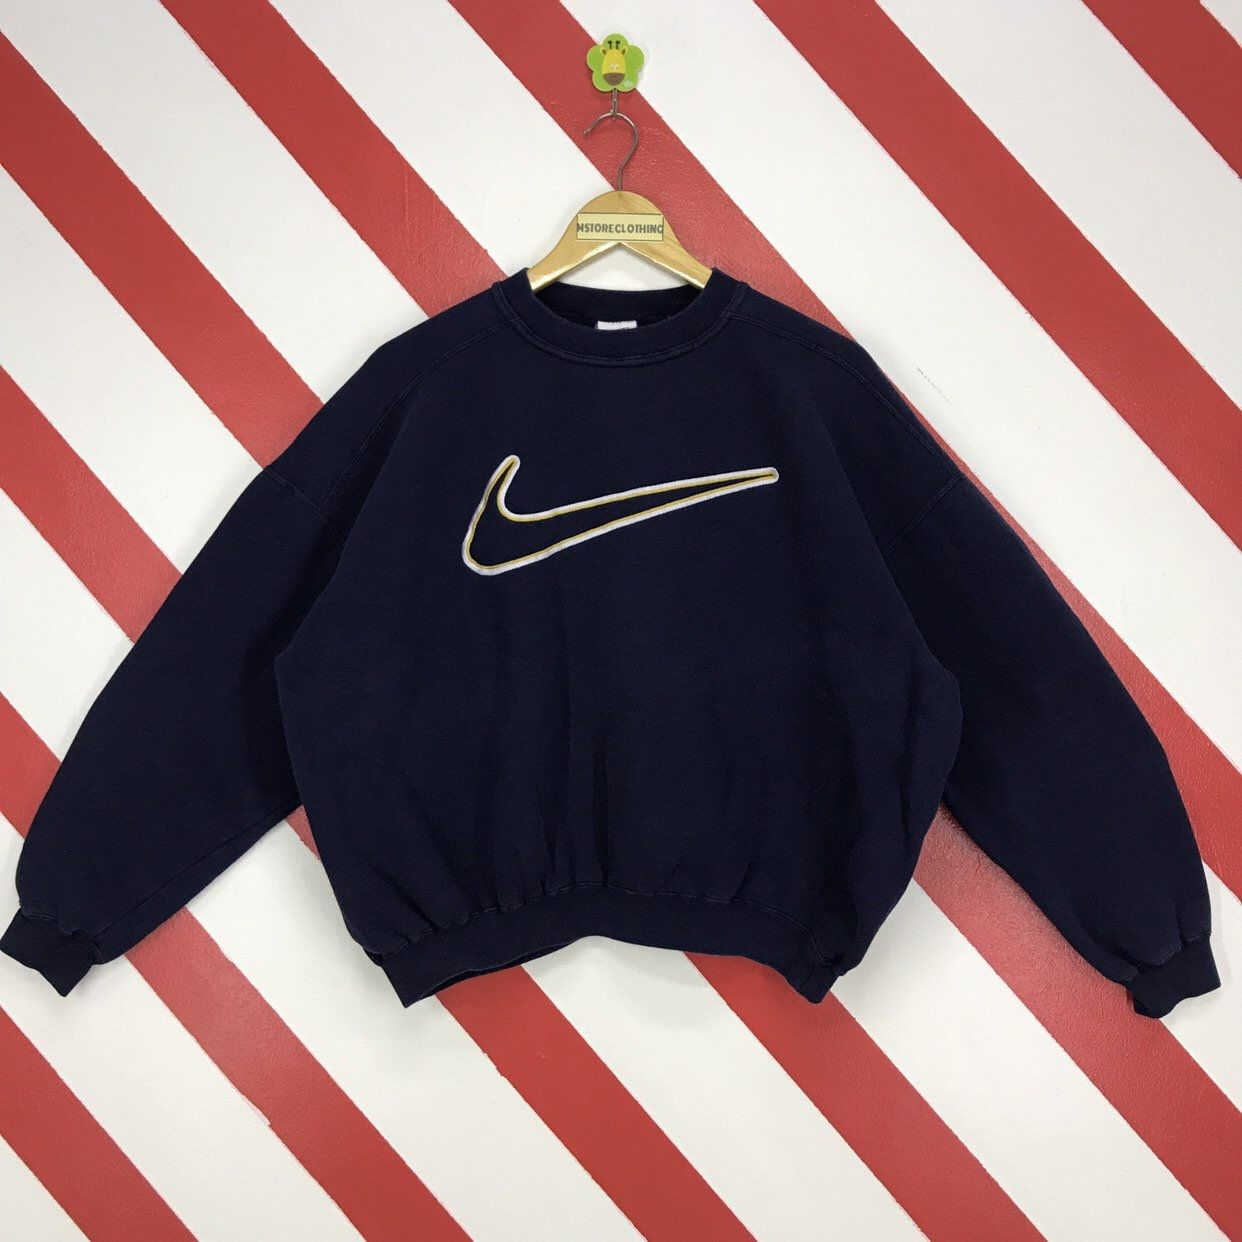 Excited To Share This Item From My Etsy Shop Vintage 90s Nike Sweatshirt Crewneck Nike Swoosh Sweate Retro Outfits Nike Sweatshirts Vintage Sweatshirt Outfit [ 1242 x 1242 Pixel ]